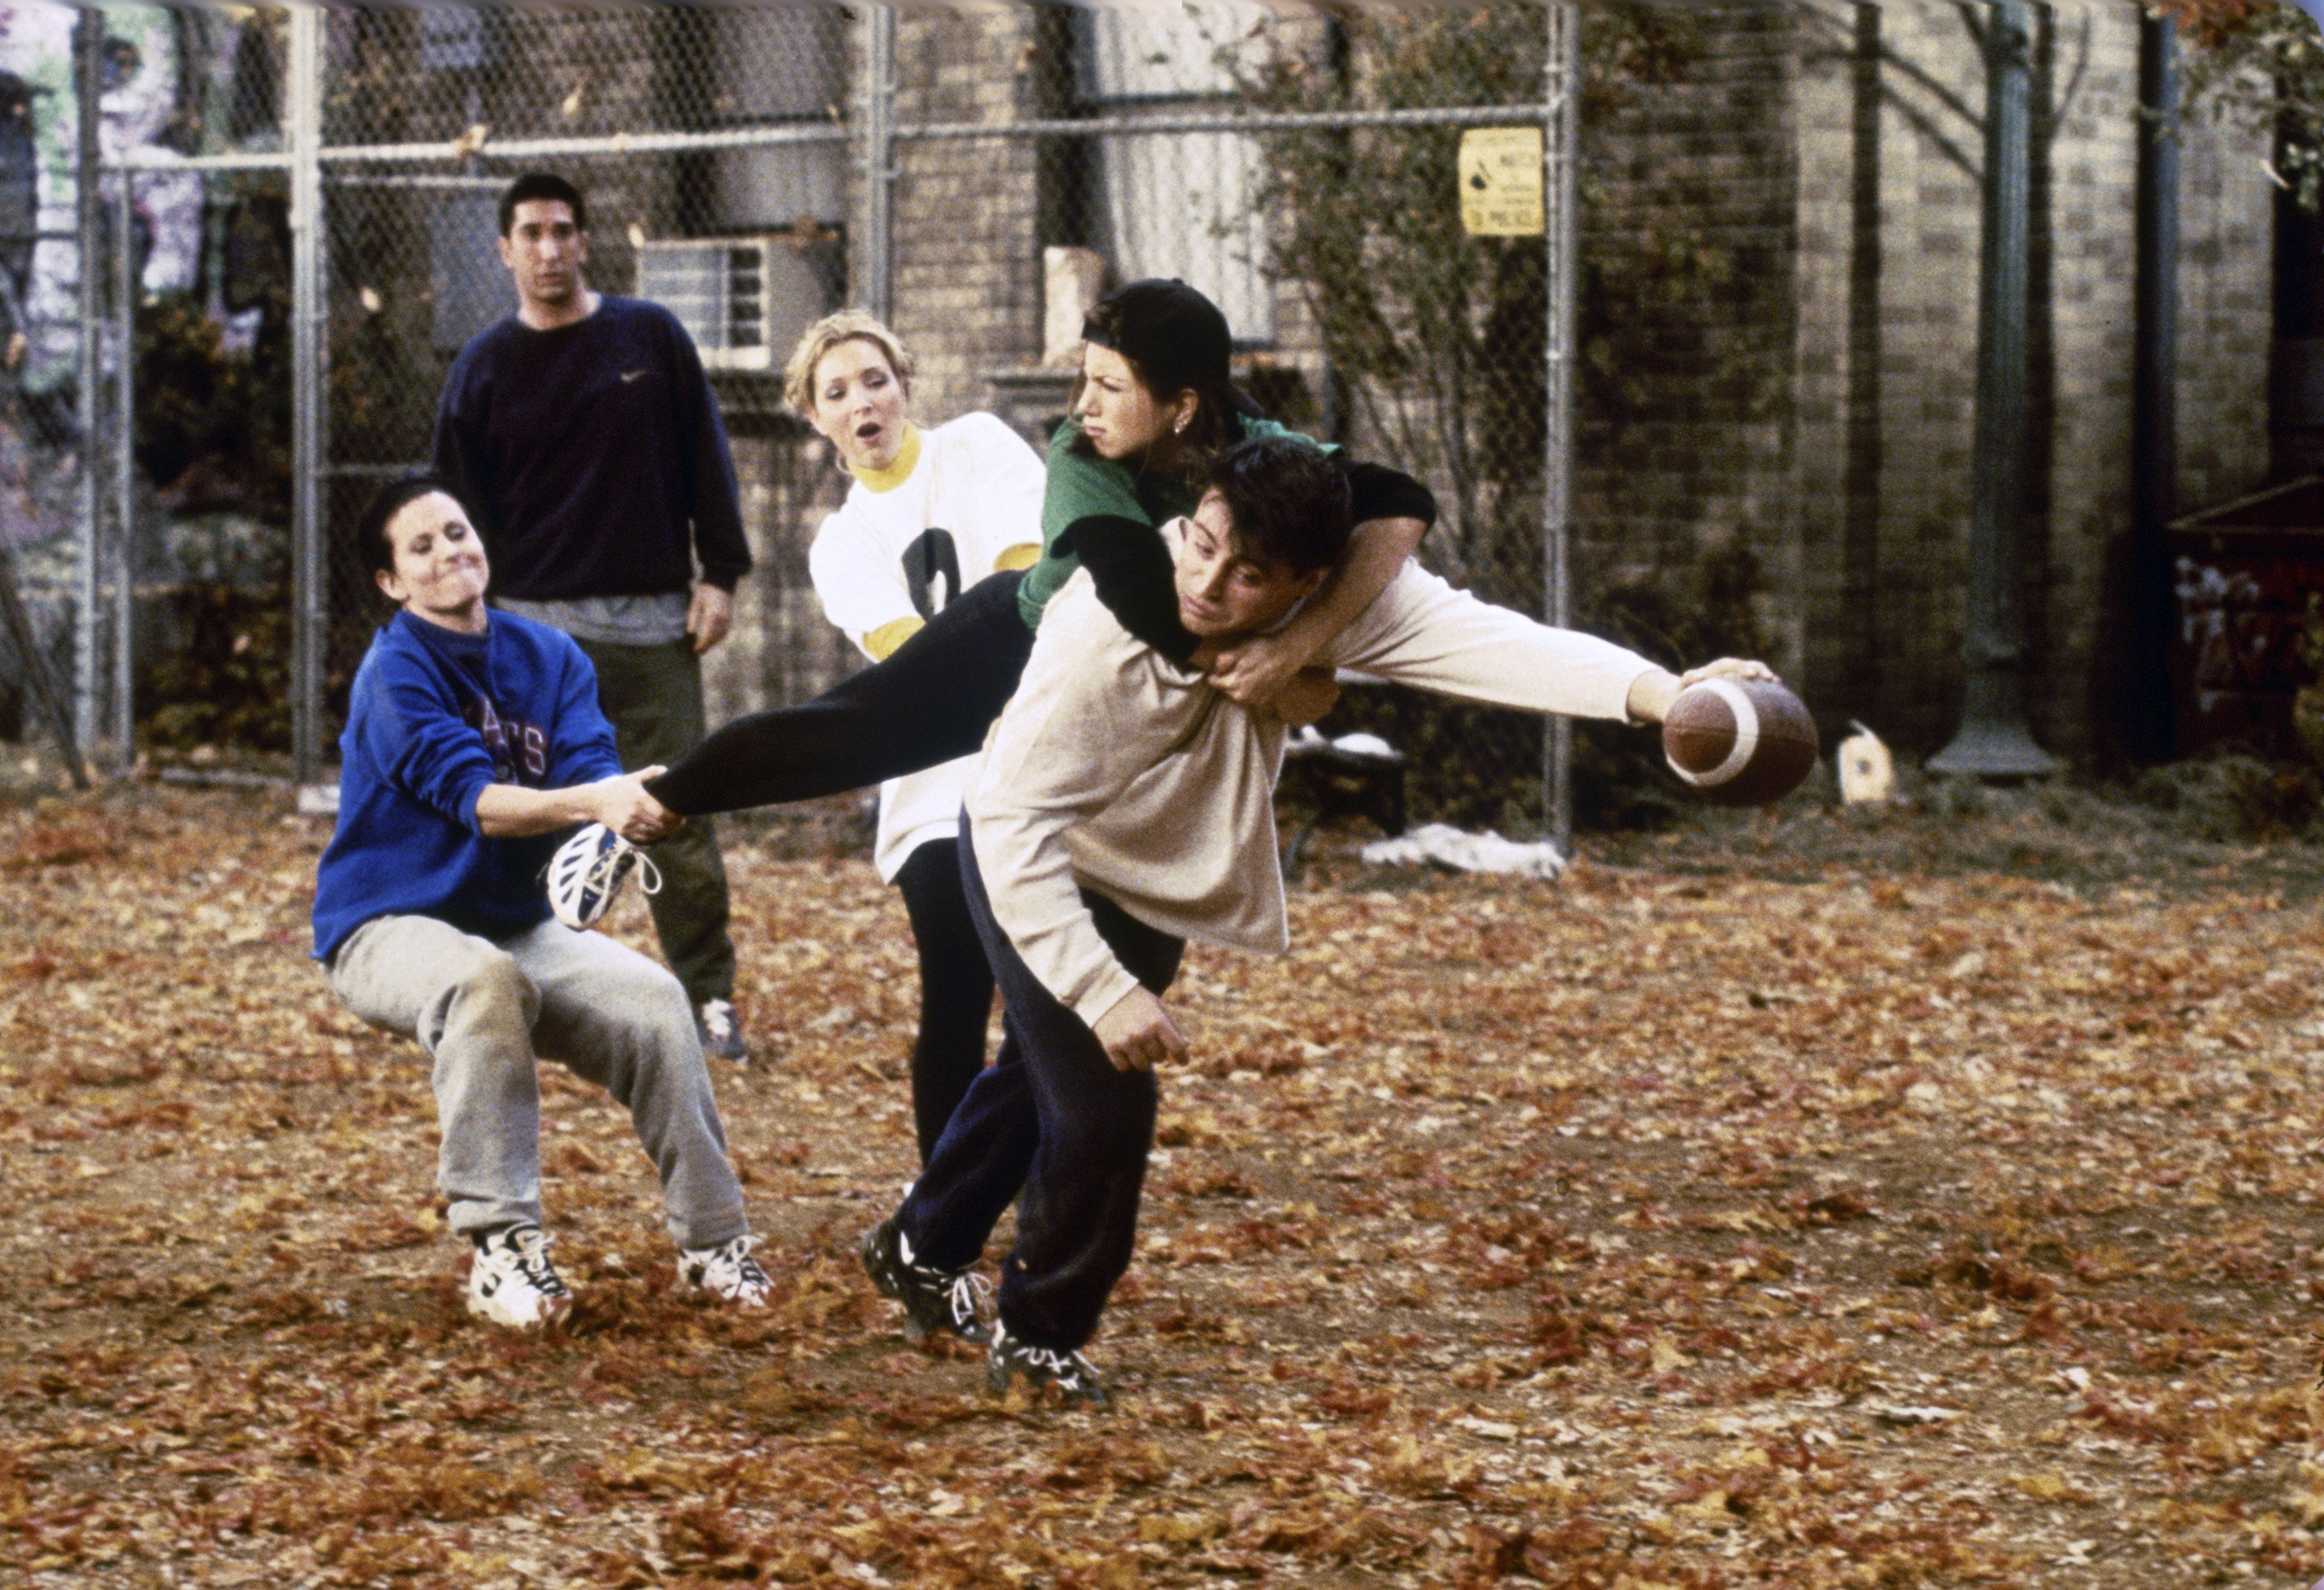 "FRIENDS -- ""The One with the Football"" Episode 6 -- Pictured: (l-r) Courteney Cox Arquette as Monica Geller, David Schwimmer as Ross Geller, Lisa Kudrow as Phoebe Buffay, Jennifer Aniston as Rachel Green, Matt LeBlanc as Joey Tribbiani -- Photo by: Gary Null/NBCU Photo Bank (BA)"